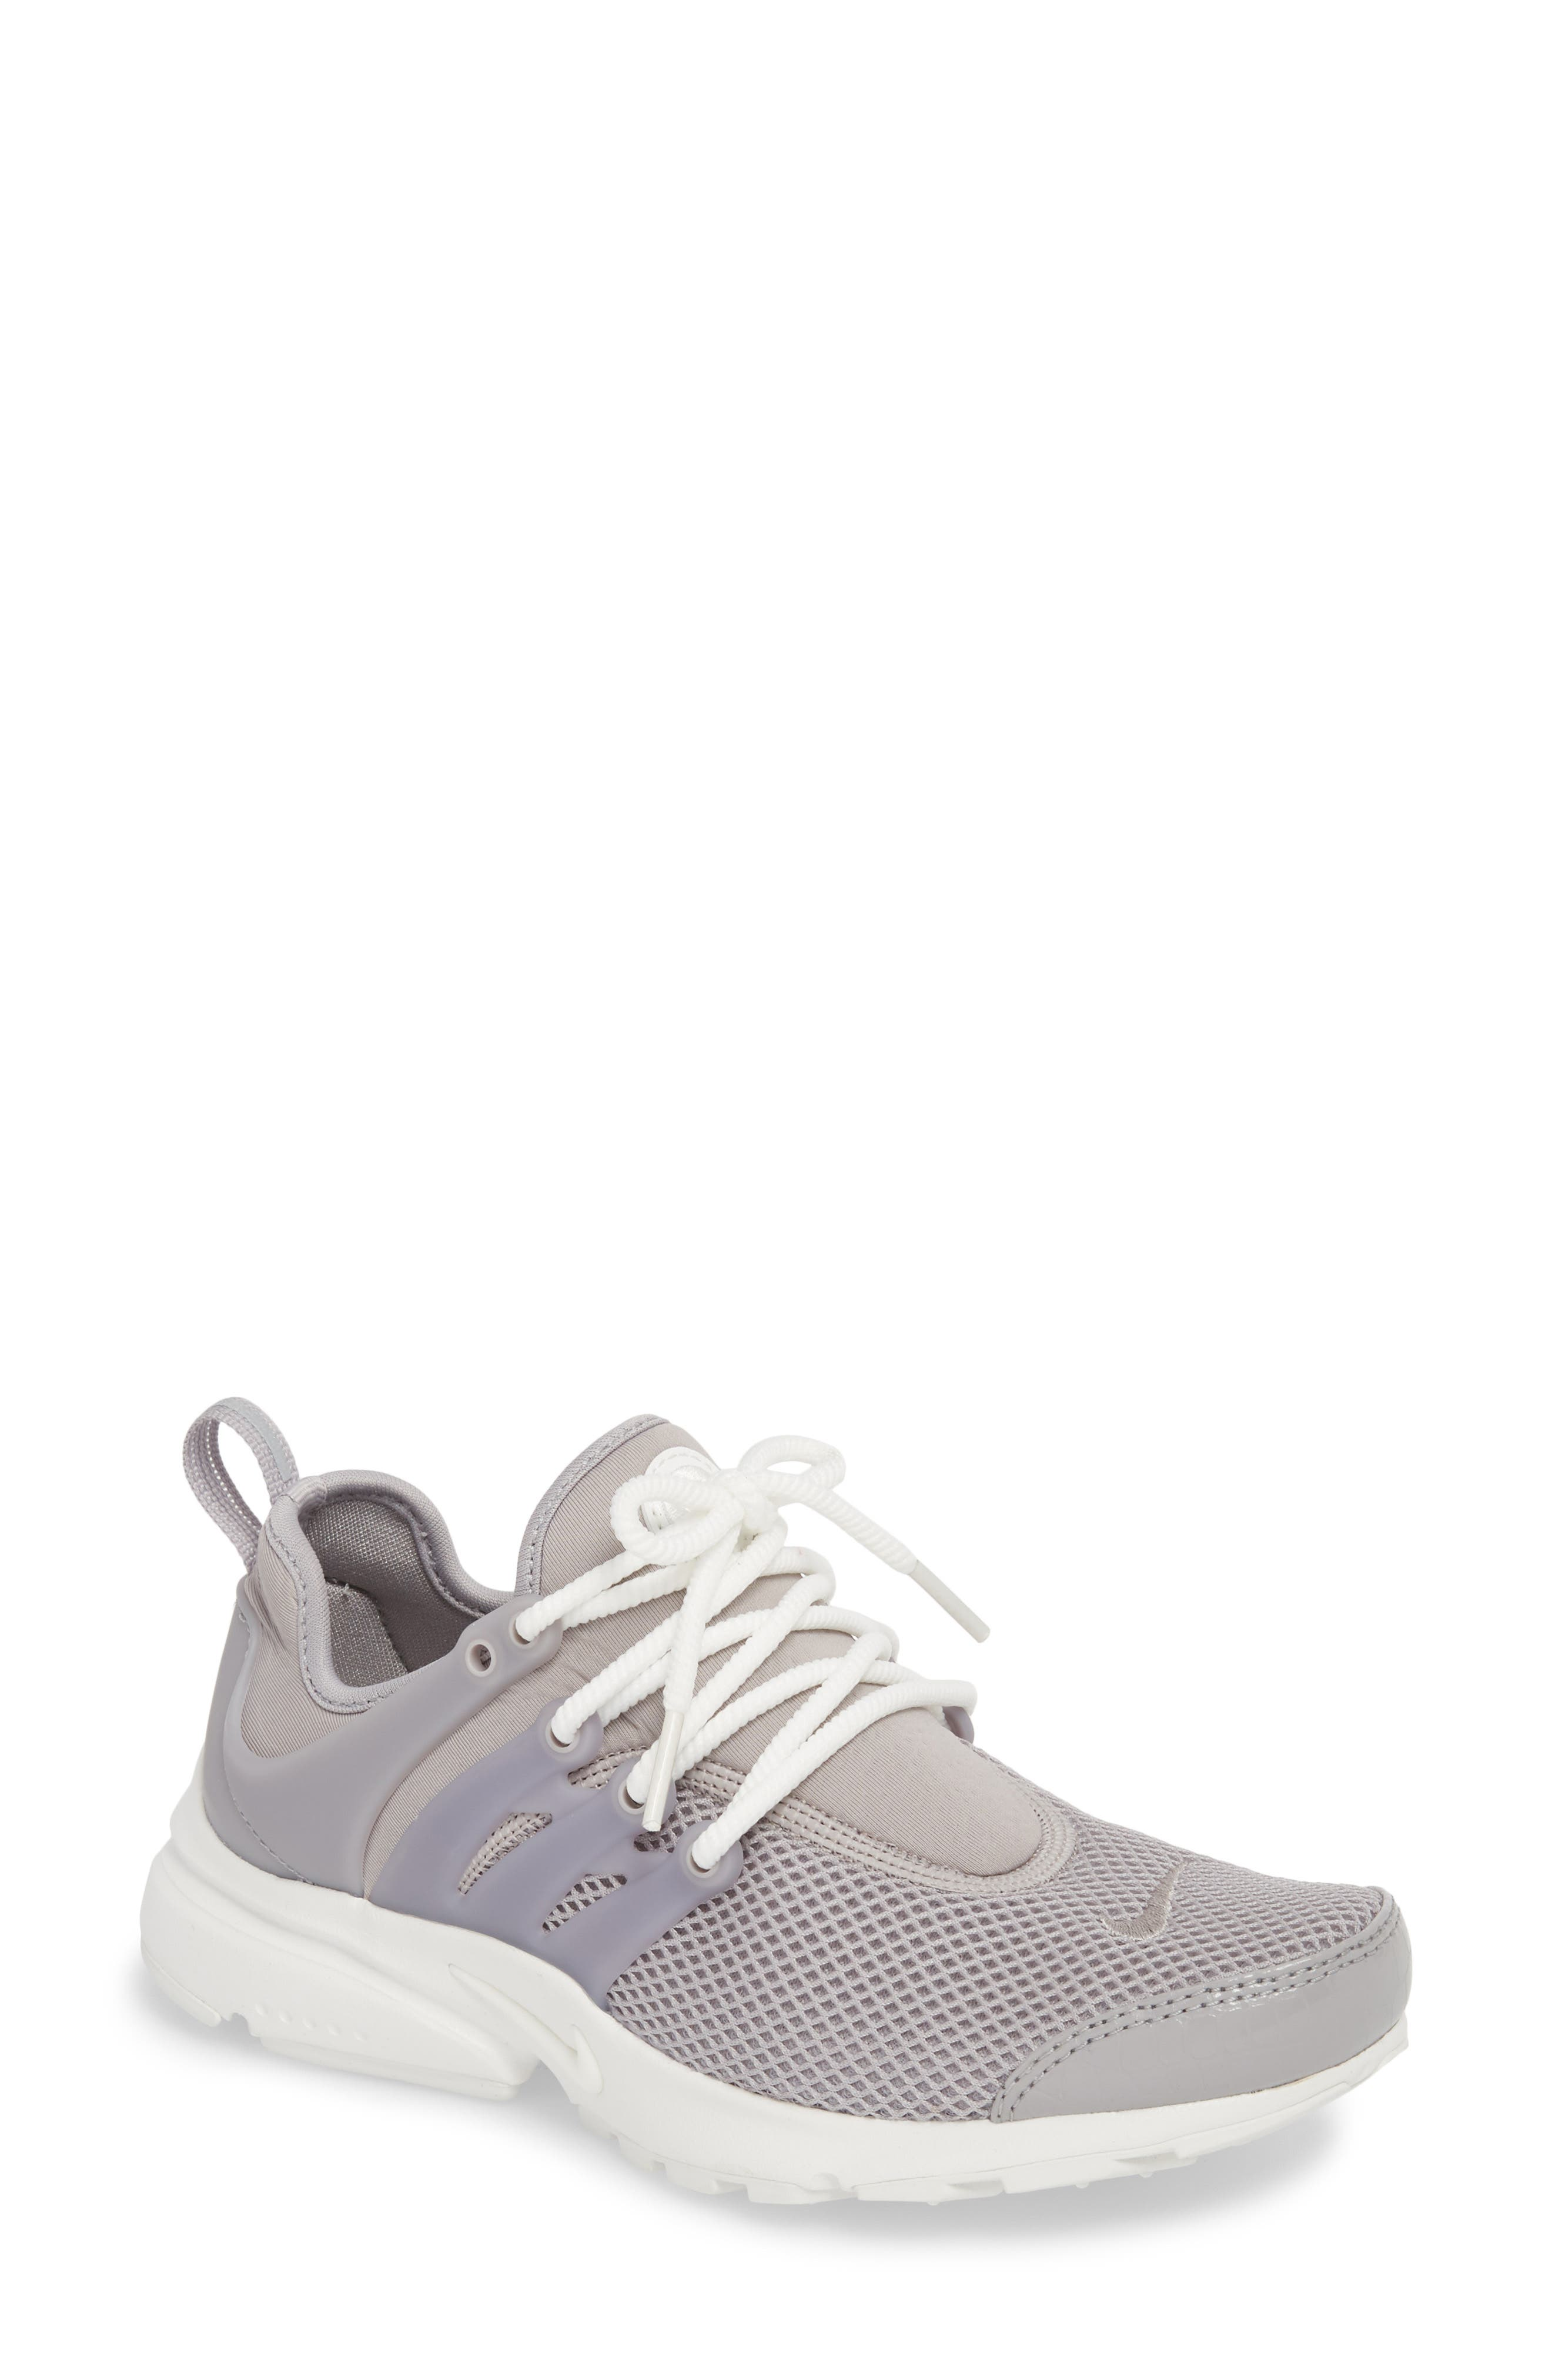 Air Presto SE Sneaker,                         Main,                         color, Atmosphere Grey